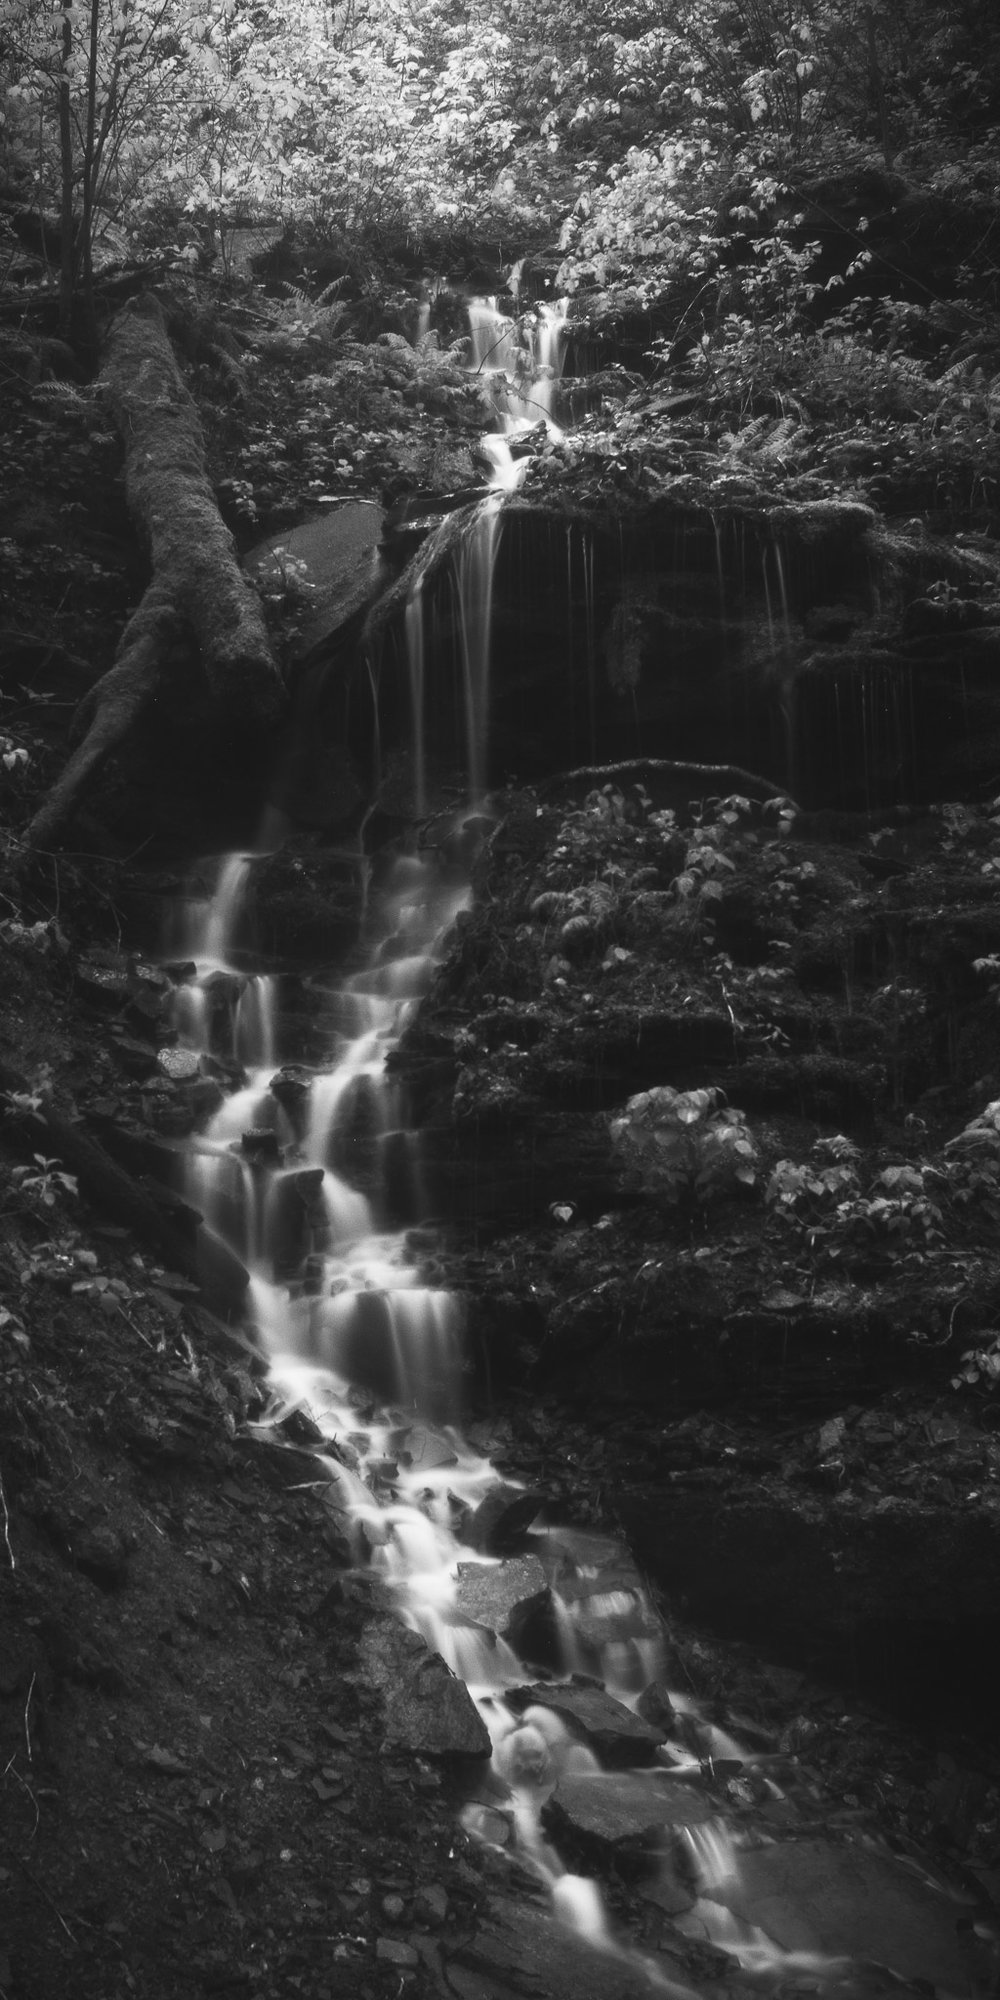 A black and white photograph by fine artist Cody Schultz, Cascade depicts a single, small waterfall as it streams down a slight hill aside a popular trail in Ricketts Glen, Pennsylvania. This scene is rather unique, given that it is not an official waterfall of the park and therefore does not occur except for after heavy rainfall. The bright white waterfall stands out from the rest of the dark scene and is started at the top of the vertical panorama with a large cluster of bright leaves in the upper left corner.